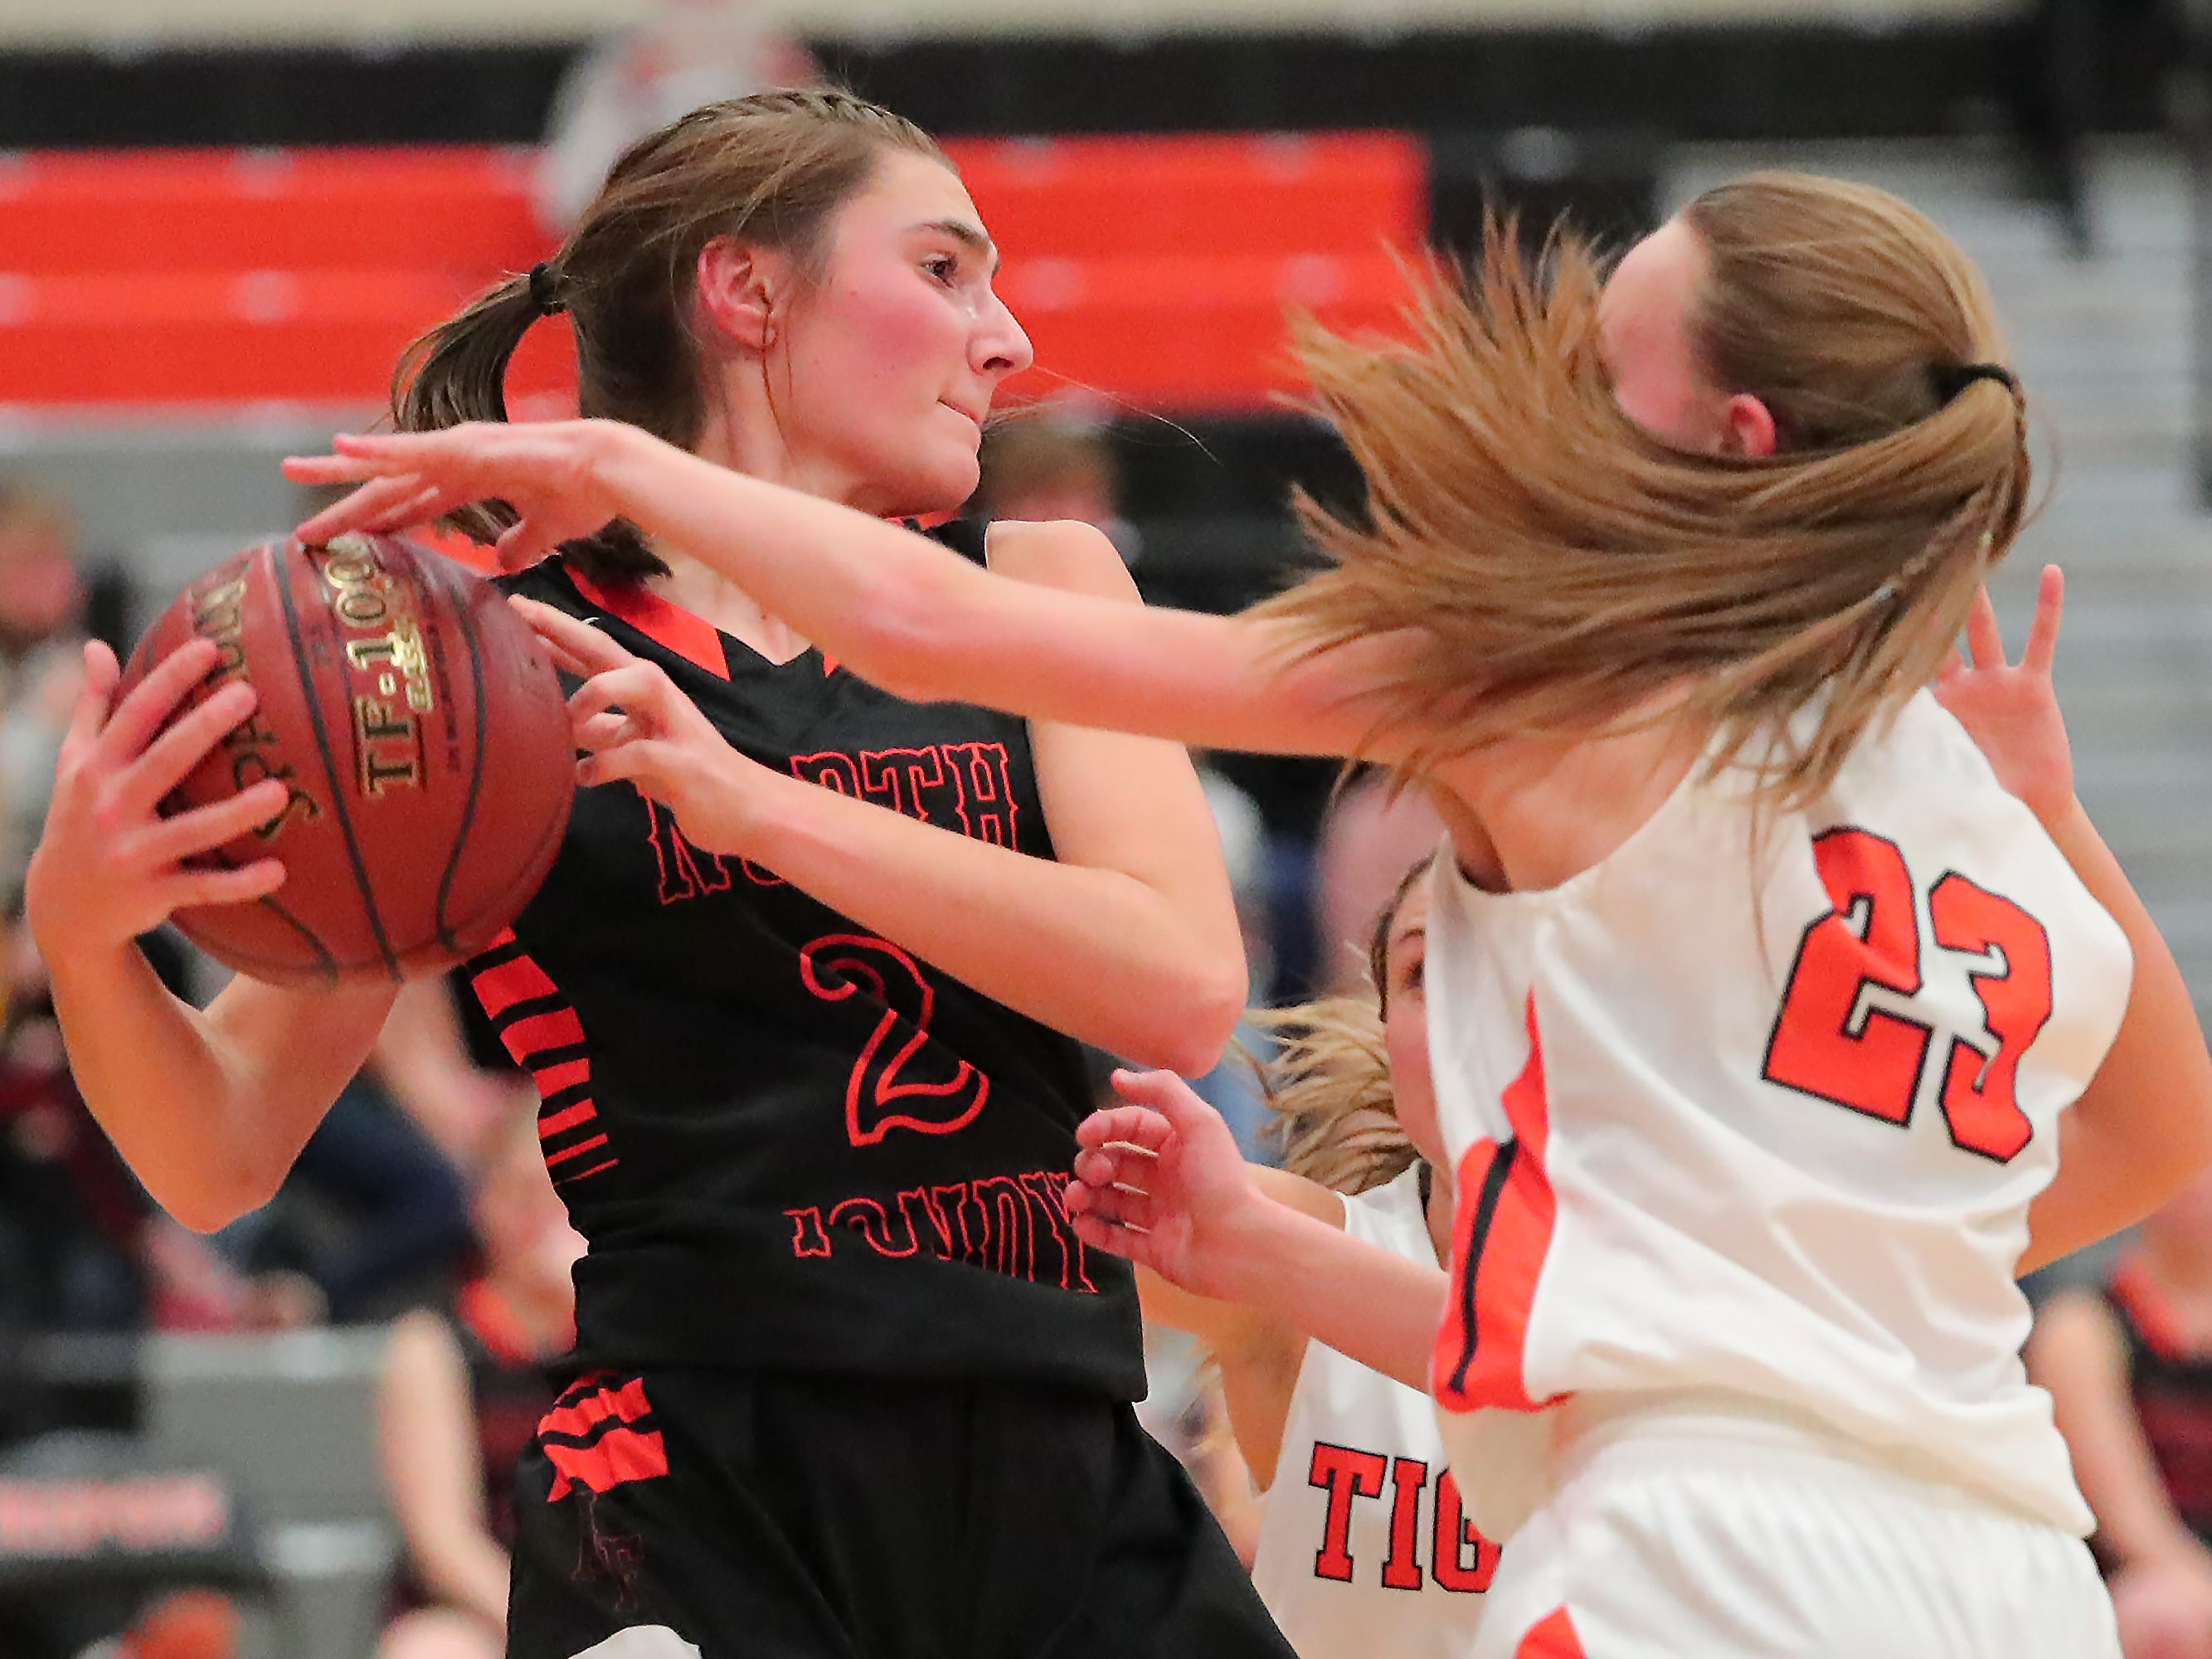 Ashley Now (2) of North Fond du Lac and Kerstin Sauerbrei (23) fight for a rebound. The Ripon Tigers hosted the North Fond du Lac Orioles in a non-conference basketball game Thursday evening, November 15, 2018.